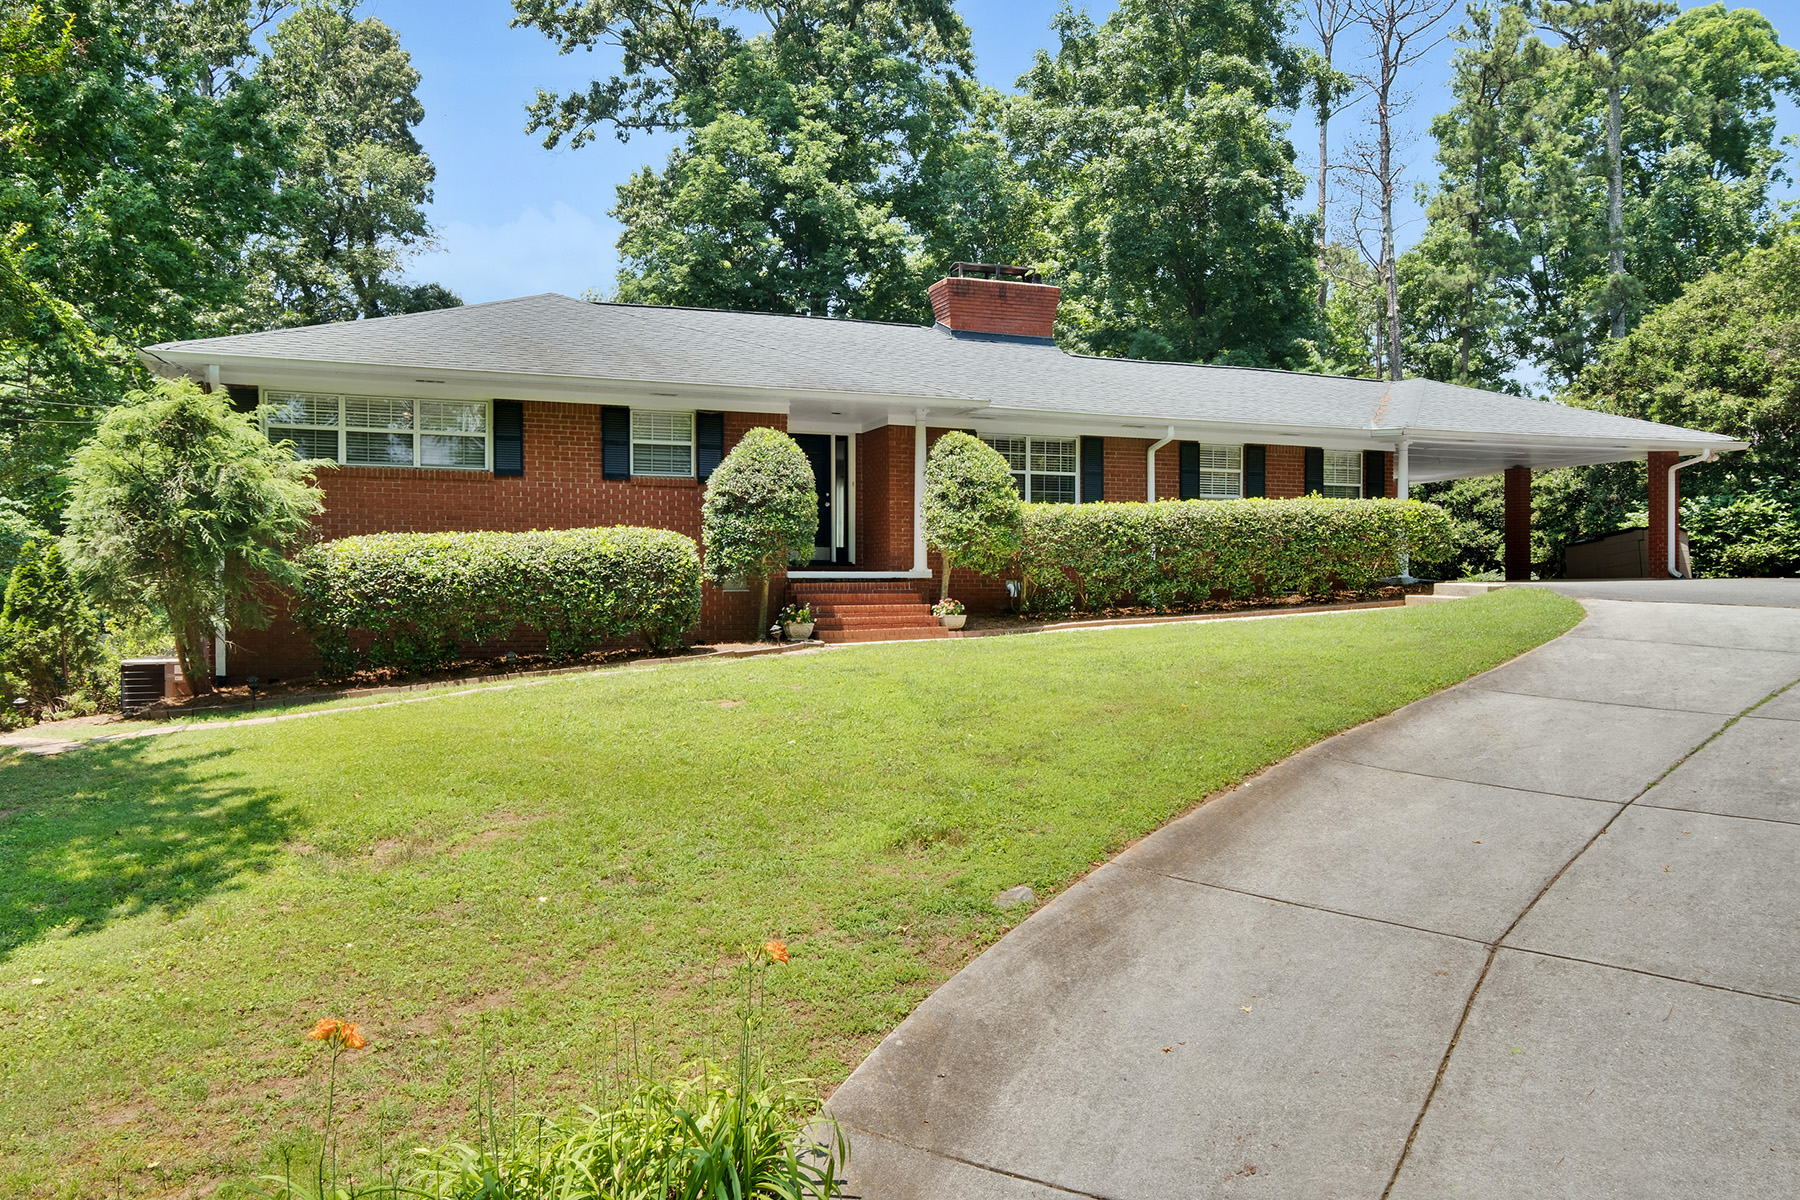 Single Family Home for Sale at Spacious Ranch Meets All Your Needs 6678 Brandon Mill Road Sandy Springs, Georgia 30328 United States